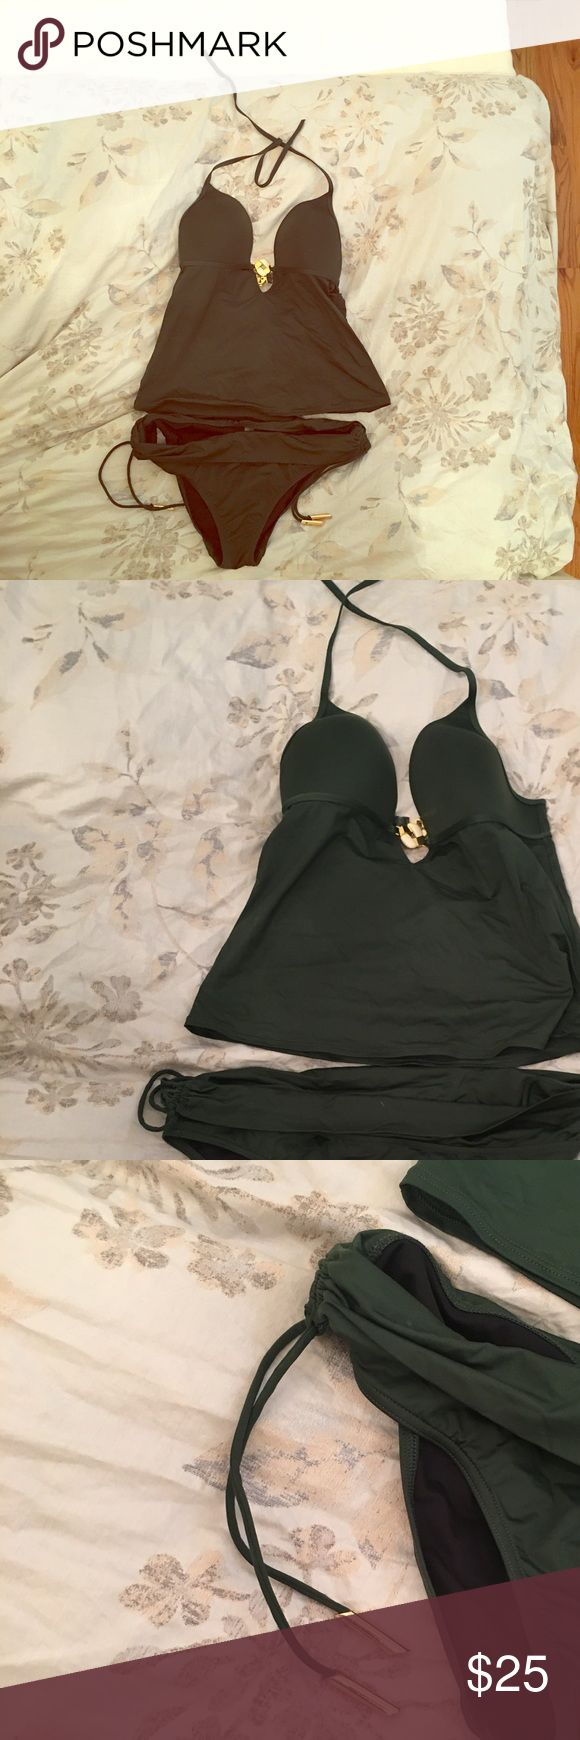 Victoria secret hunter green tankini Gorgeous tankini. Hunter green with amazing gold hardware. Cups are molded with slight padding for lift. Great condition. Top and bottoms are large Victoria's Secret Swim